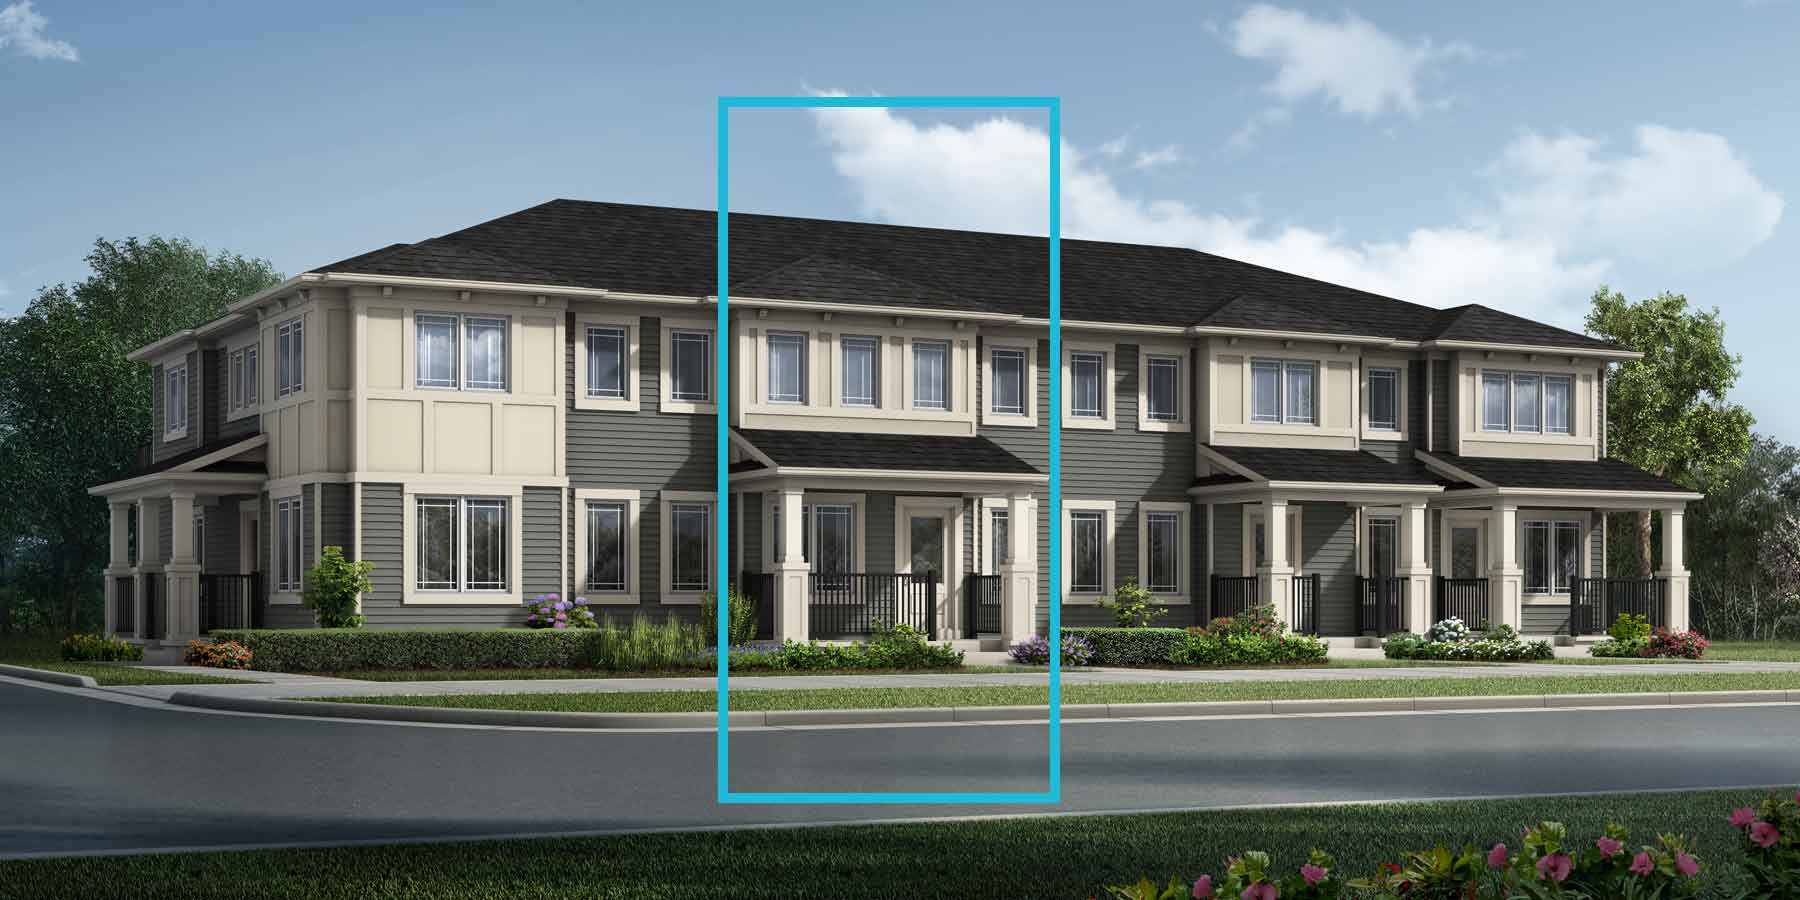 Brooke Plan TownHomes at Carrington in Calgary Alberta by Mattamy Homes